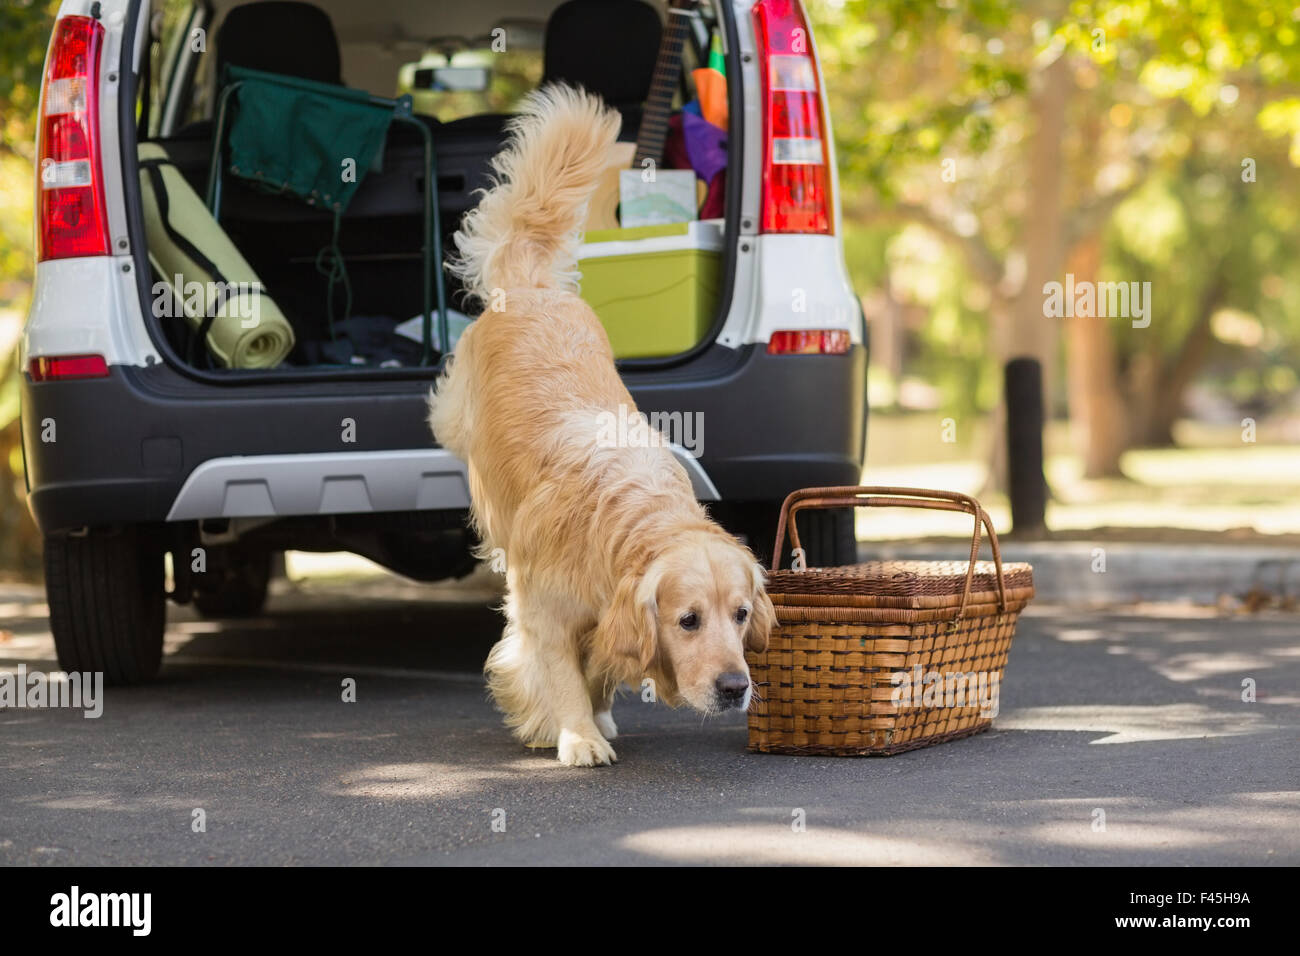 Domestic dog in car trunk - Stock Image